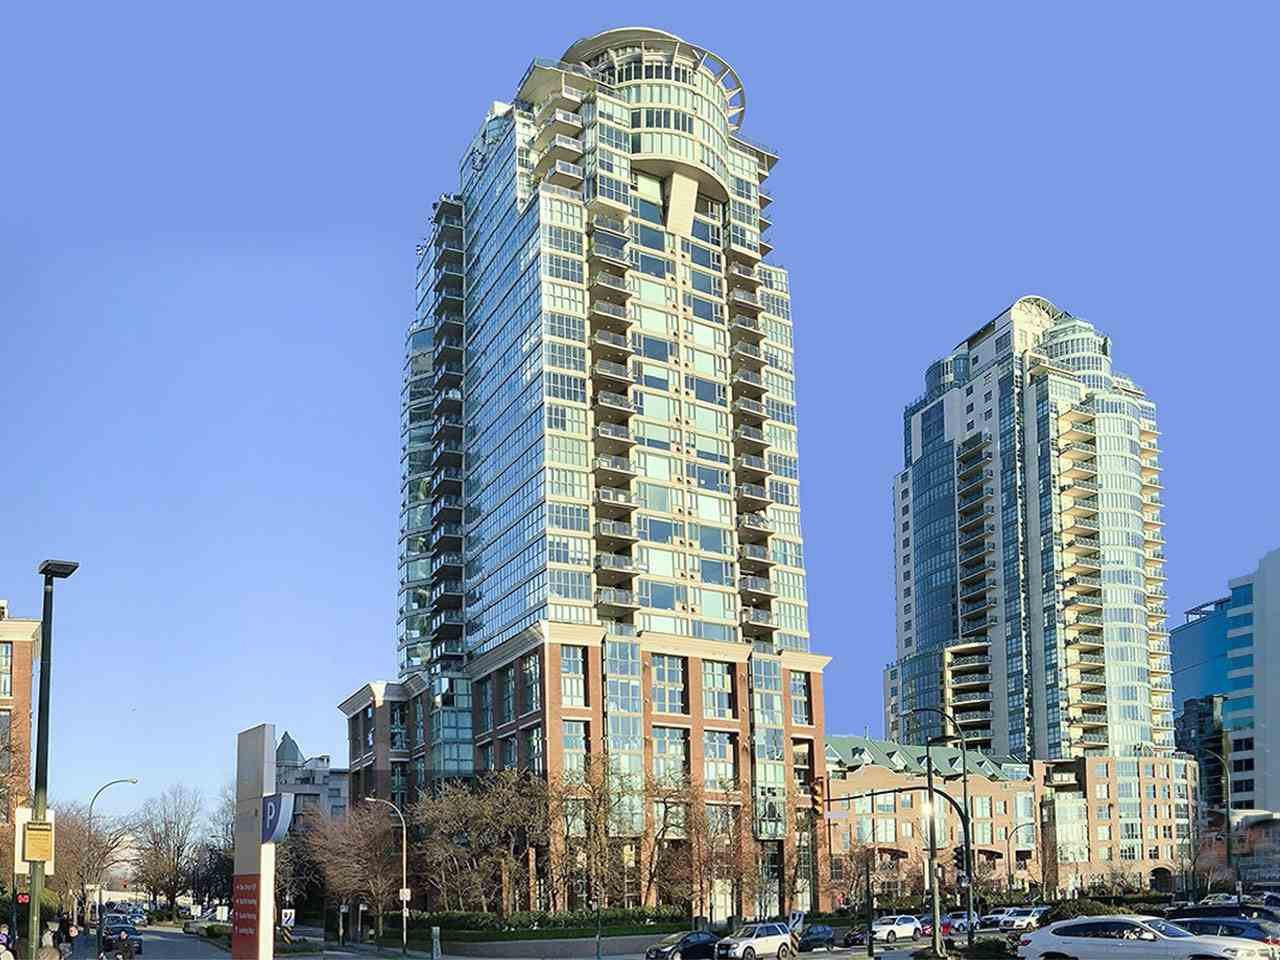 """Main Photo: 301 1128 QUEBEC Street in Vancouver: Downtown VE Condo for sale in """"THE NATIONAL"""" (Vancouver East)  : MLS®# R2503435"""